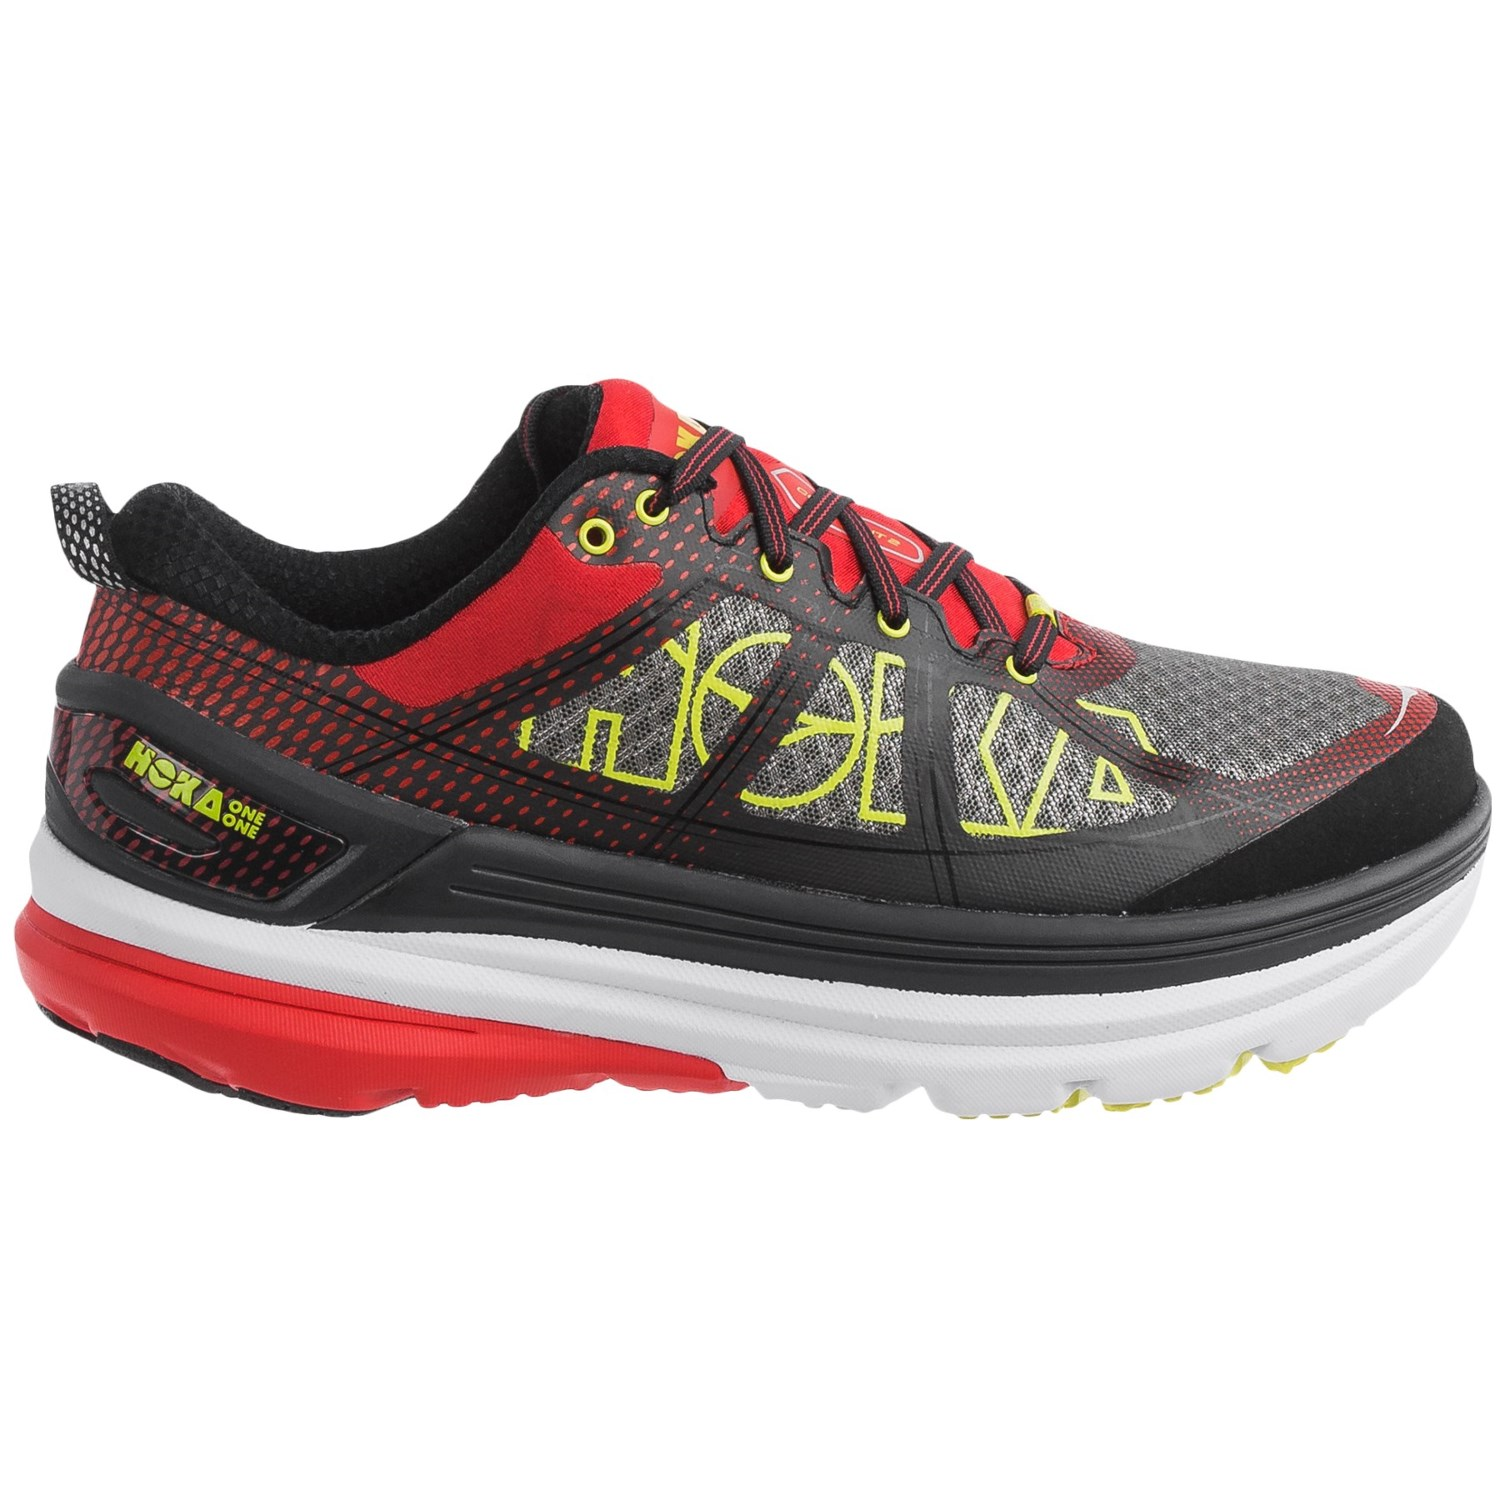 HOKA shoes for trail, road and mountain running for ultra runners. One year warranty with free and fast delivery from Ultramarathon Running Store.